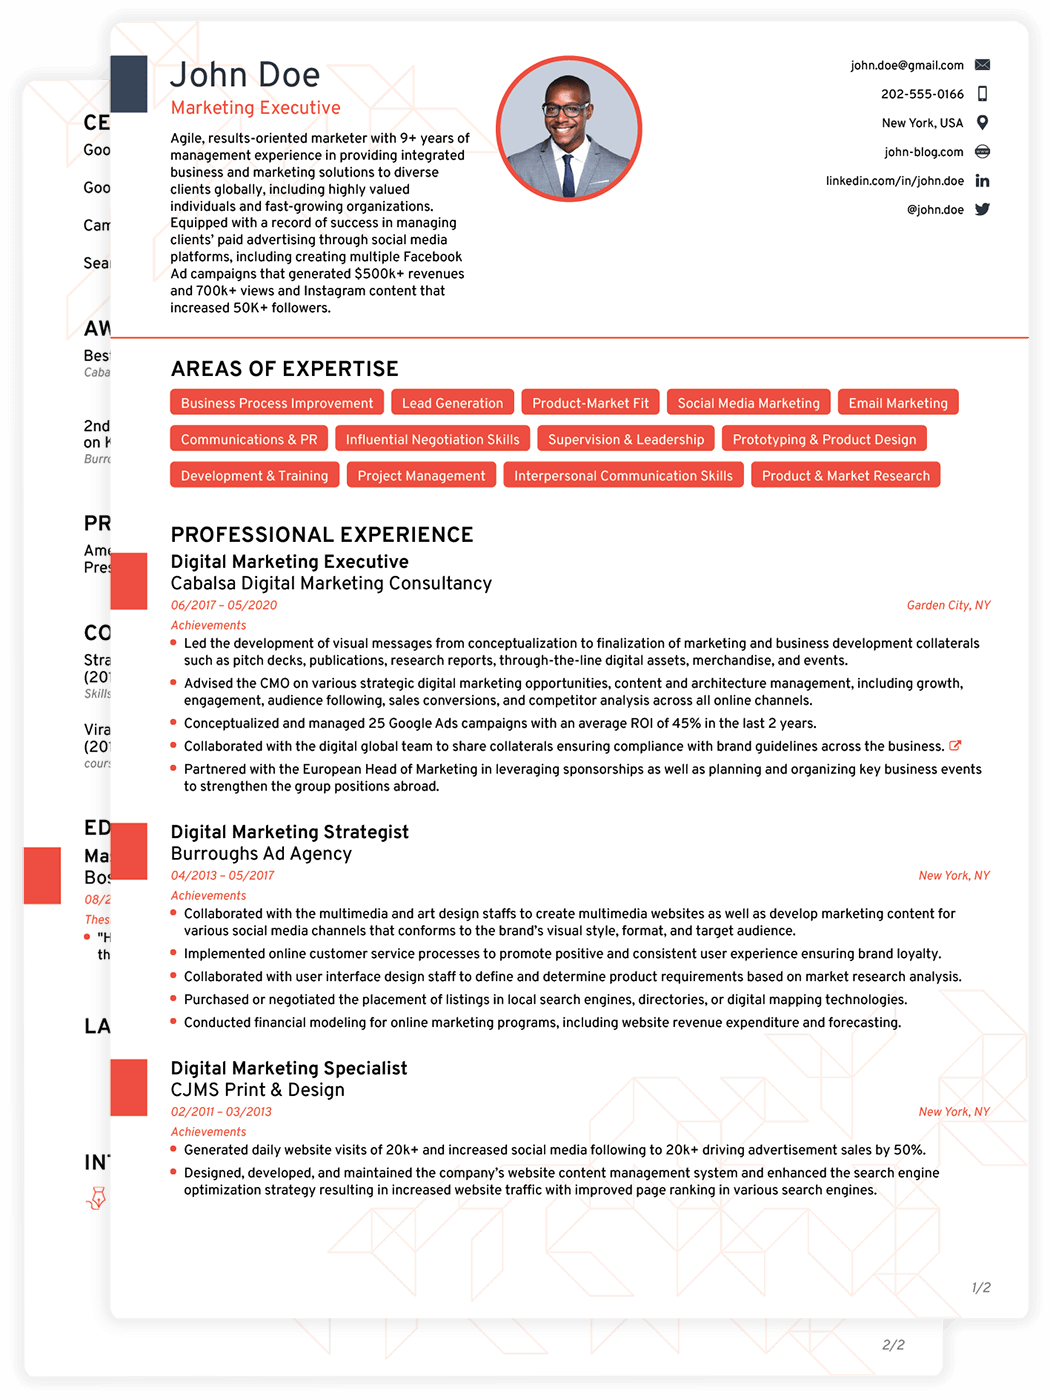 personalized resume